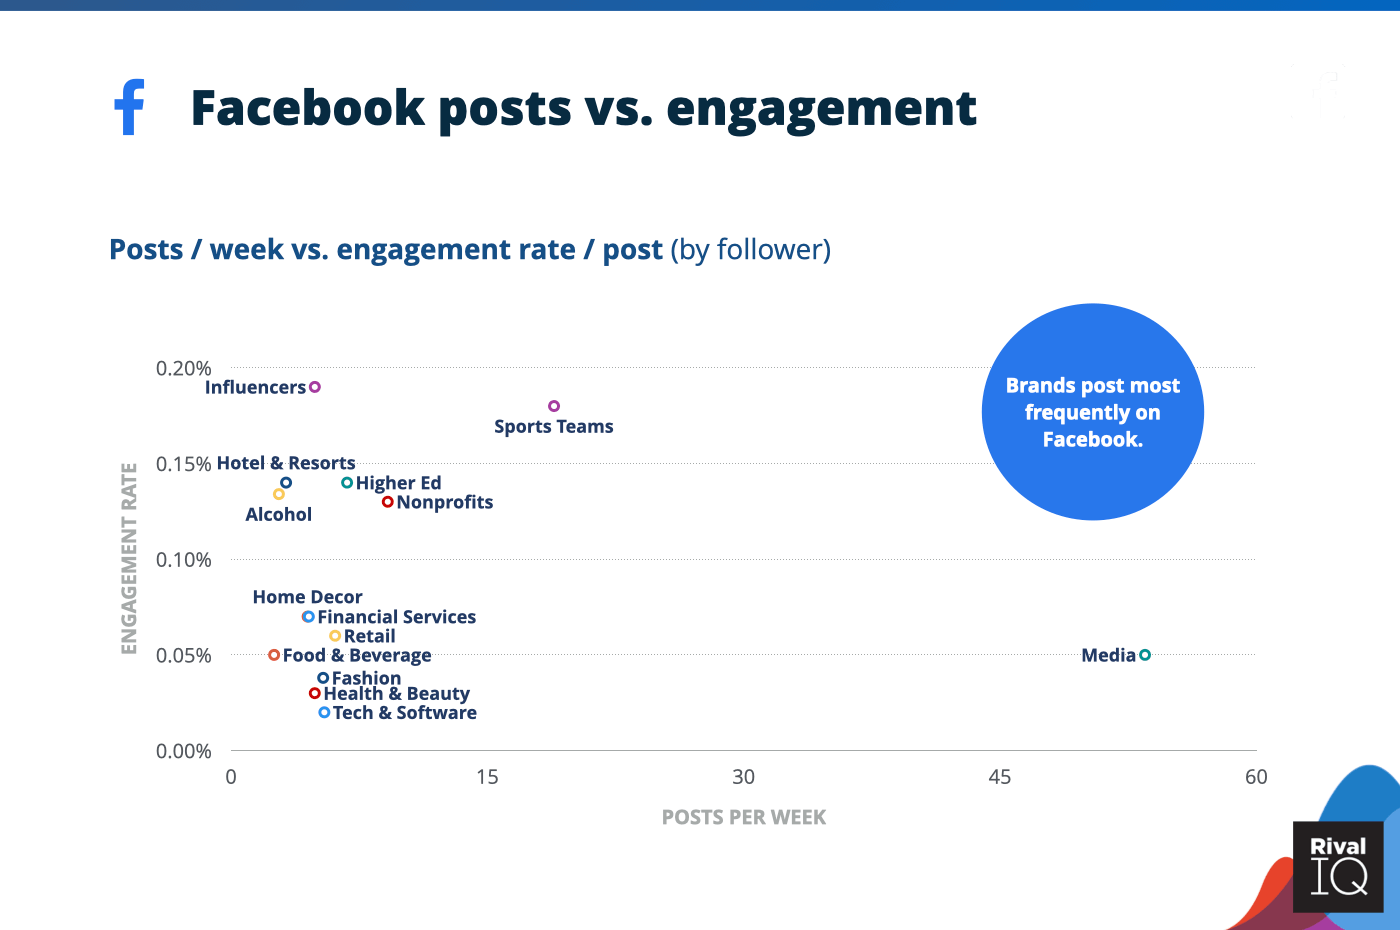 Chart of Facebook posts per week vs. engagement rate per posts, all industries